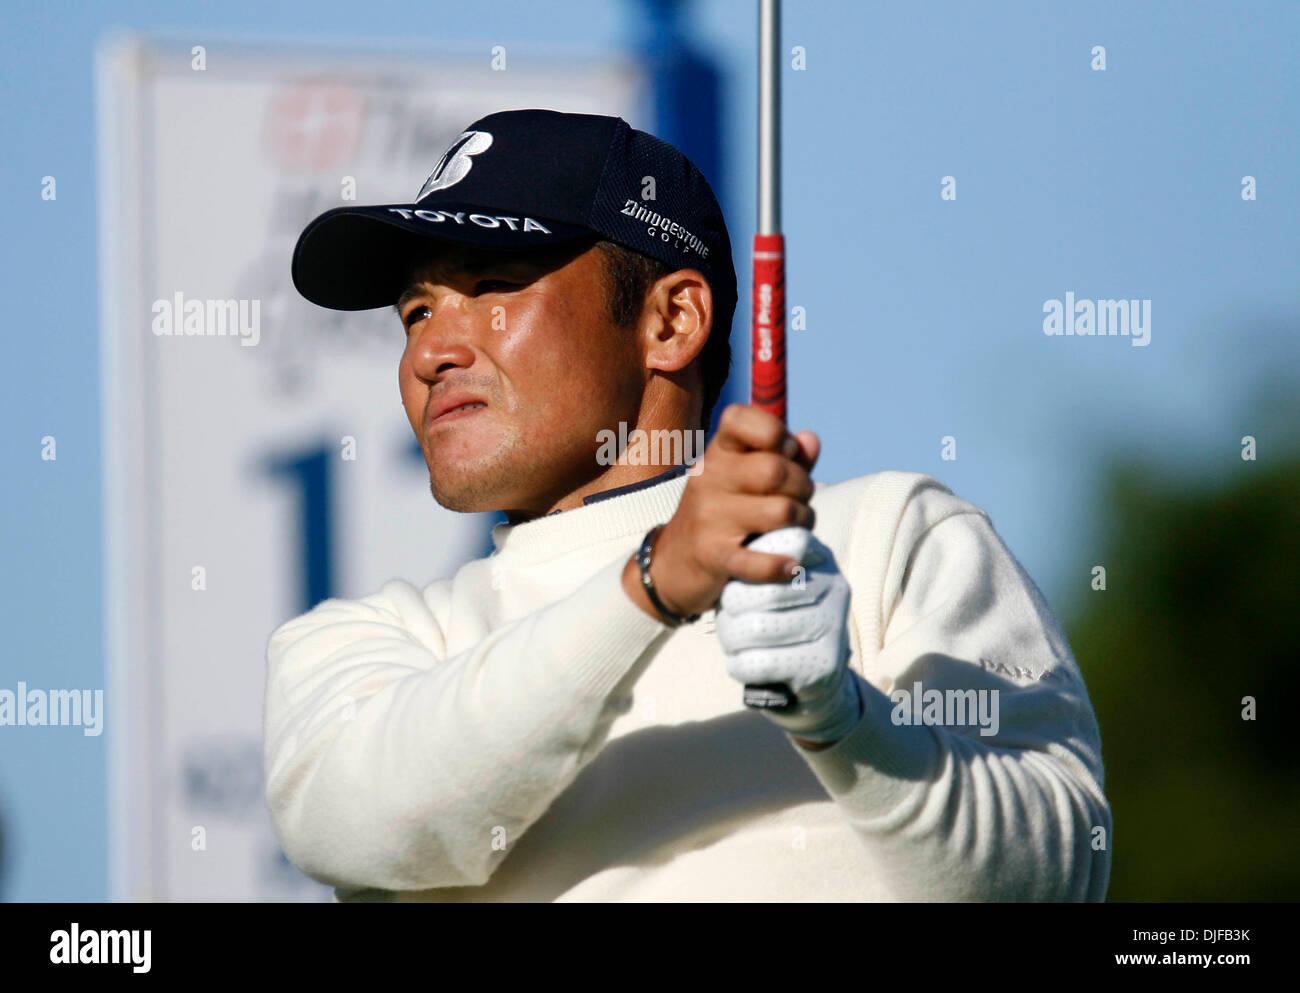 Feb 28, 2008 - Palm Beach Gardens, Florida, USA - SHIGEKI MARUYAMA follows his ball after teeing off at the 12th tee. The first round of the 2008 Honda Classic Gold Pro-Am on February 28, 2008. (Credit Image: © J. Gwendolynne Berry/Palm Beach Post/ZUMA Press) RESTRICTIONS: * USA Tabloids Rights OUT * - Stock Image